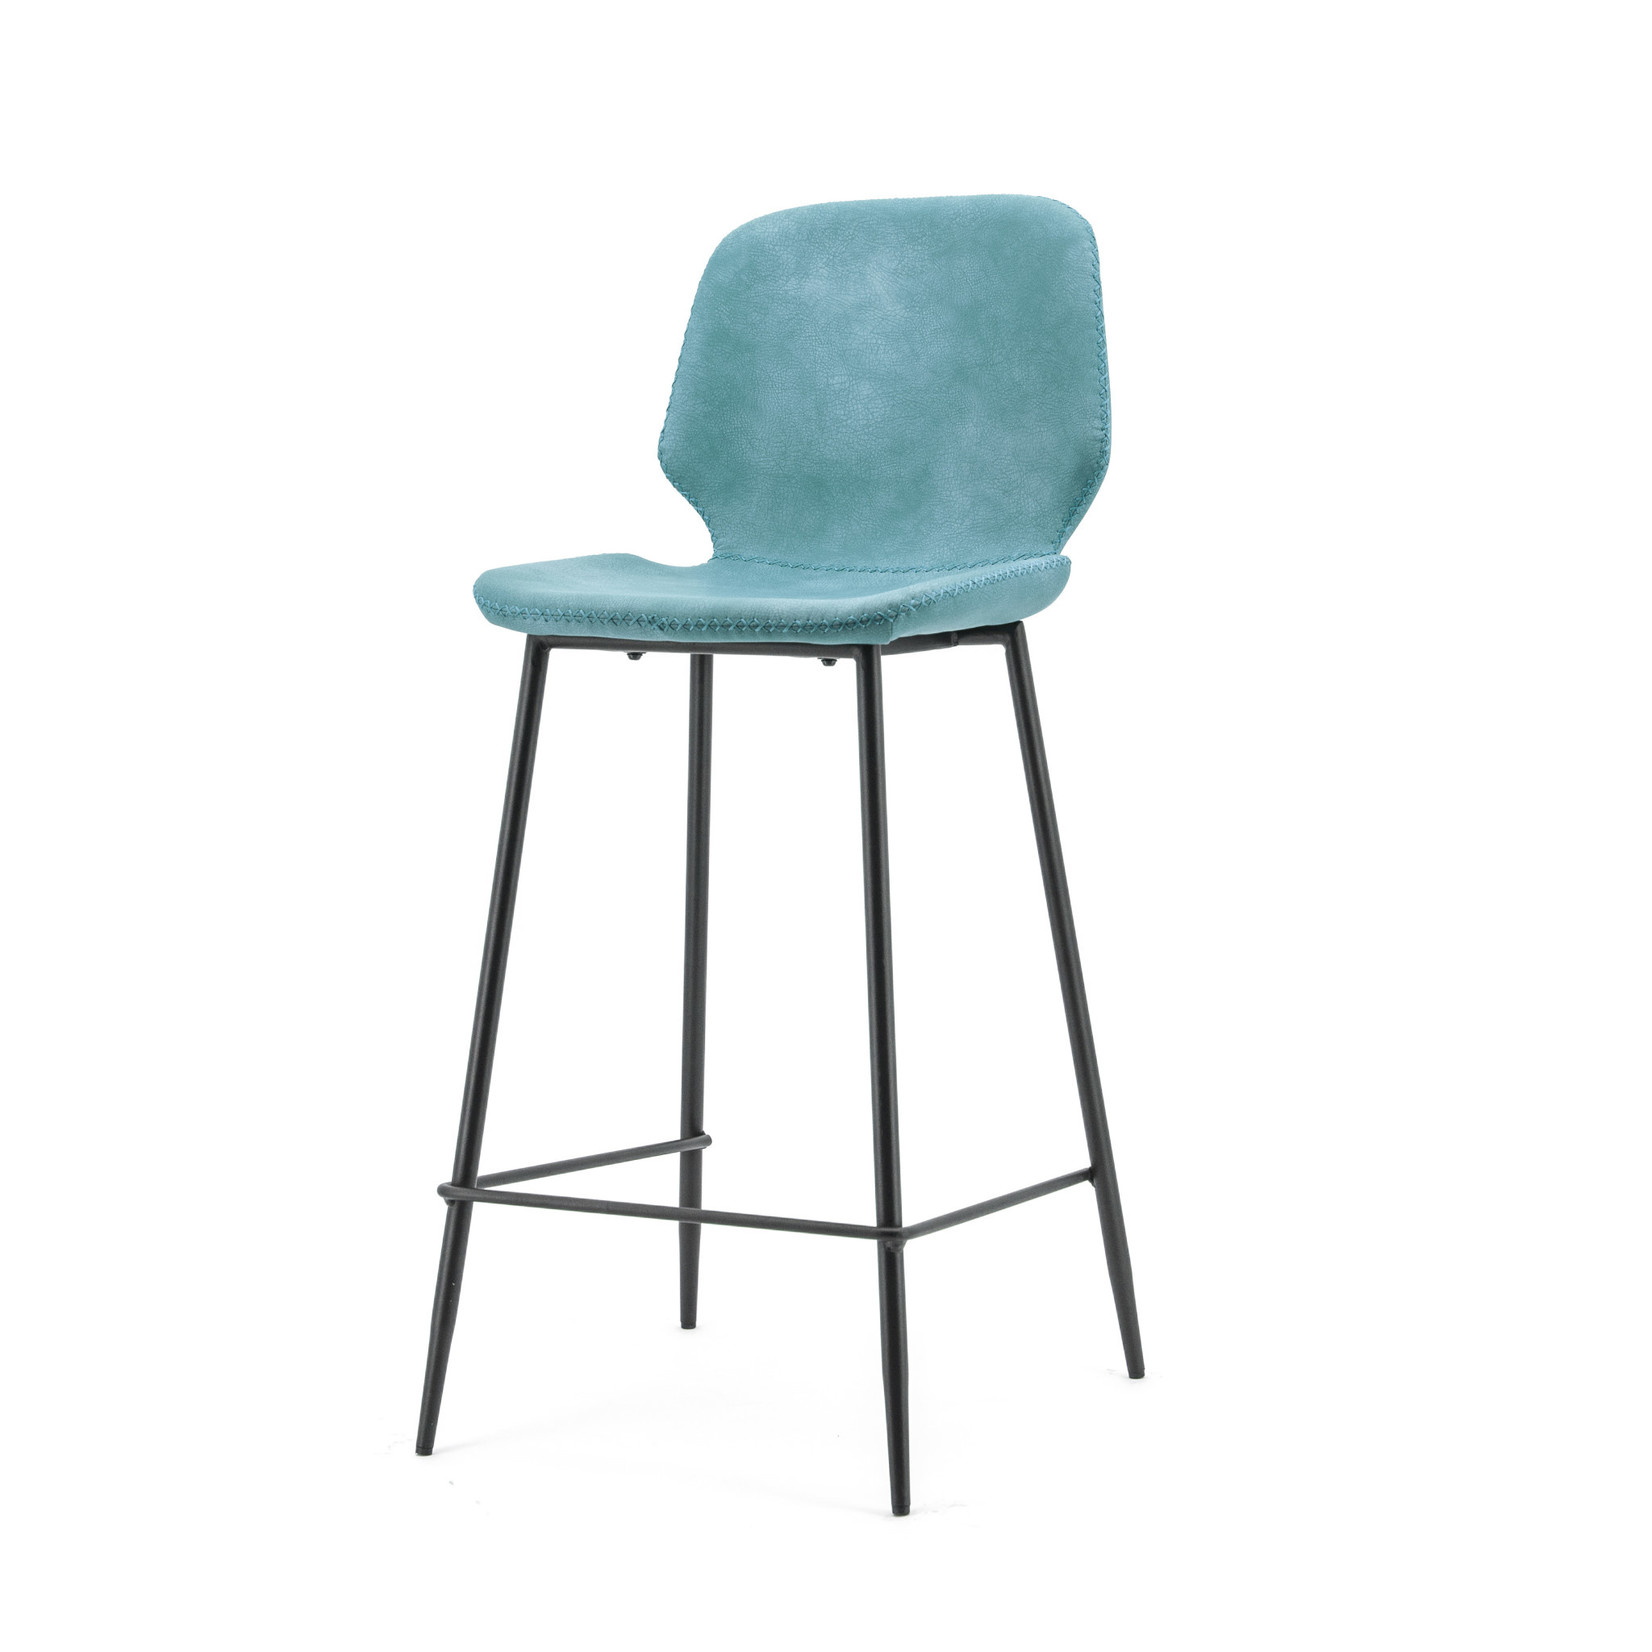 By Boo By Boo Barchair Seashell low - blue